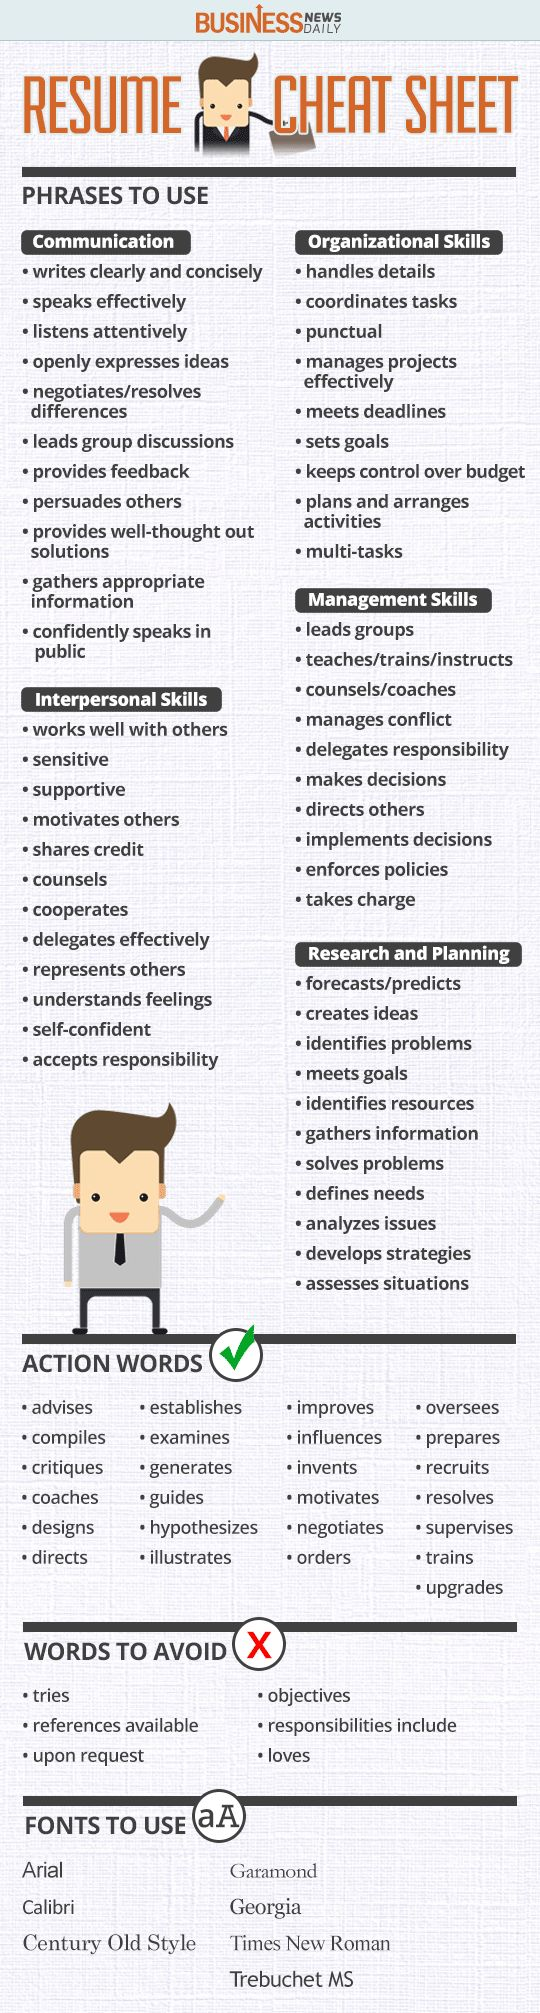 Opposenewapstandardsus  Prepossessing  Ideas About Resume On Pinterest  Cv Format Resume  With Handsome Resume Cheat Sheet Infographic Andrews Almost Done With A Complete Unit On Employment Which With Beautiful Make A Job Resume Also Resume Career Objective Examples In Addition Examples Of Resumes For Customer Service And Resume Examples Teacher As Well As Sample Resume With No Job Experience Additionally Outside Sales Rep Resume From Pinterestcom With Opposenewapstandardsus  Handsome  Ideas About Resume On Pinterest  Cv Format Resume  With Beautiful Resume Cheat Sheet Infographic Andrews Almost Done With A Complete Unit On Employment Which And Prepossessing Make A Job Resume Also Resume Career Objective Examples In Addition Examples Of Resumes For Customer Service From Pinterestcom